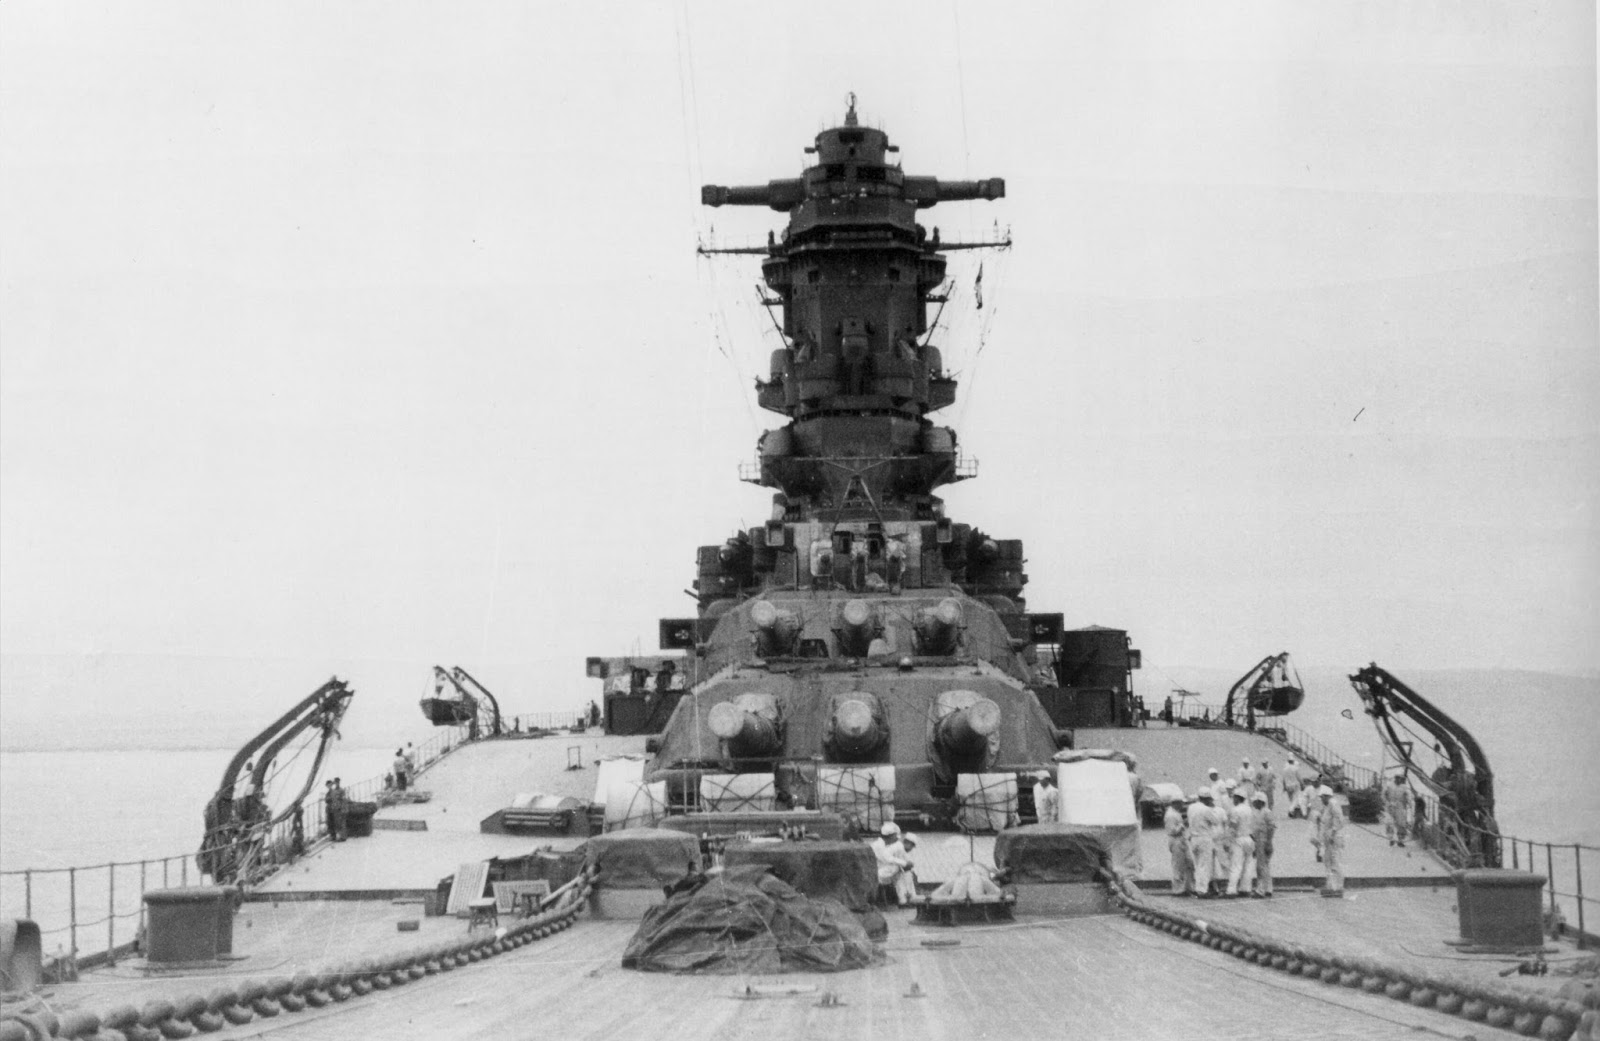 Naval Analyses: INFOGRAPHICS #16 and HISTORY #3: Battleships